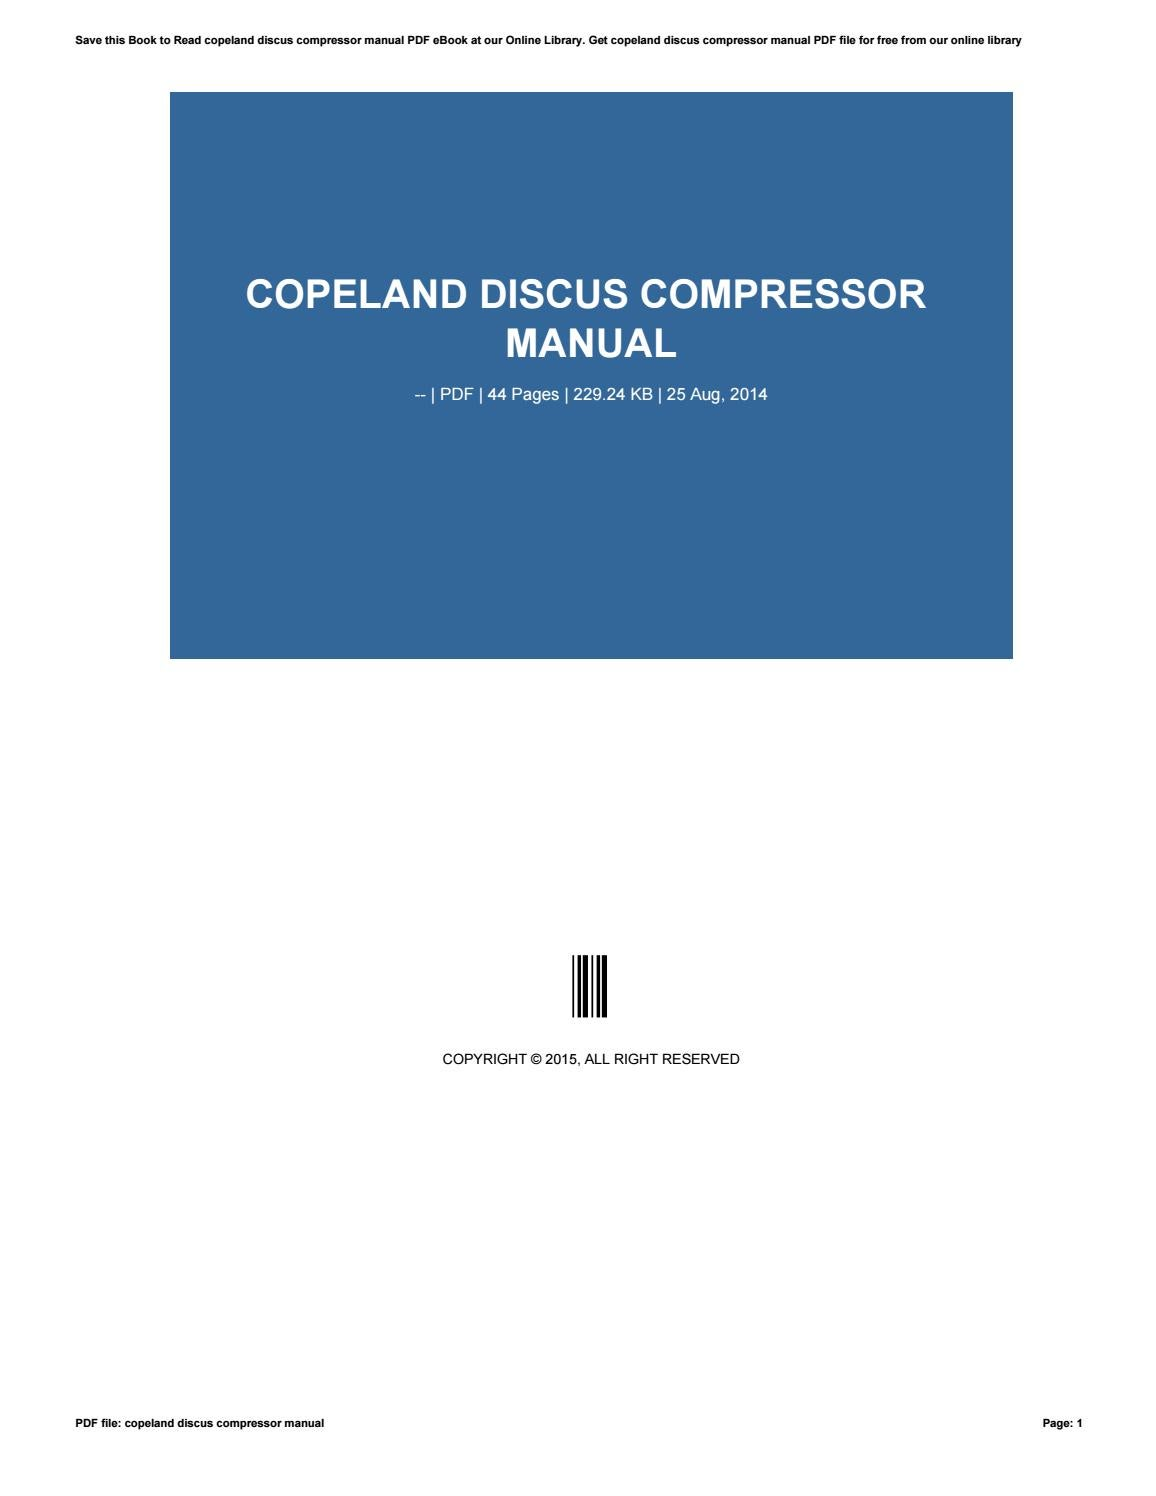 Copeland Compressor Schematic Discus Manual By Jklasdf75 Issuu